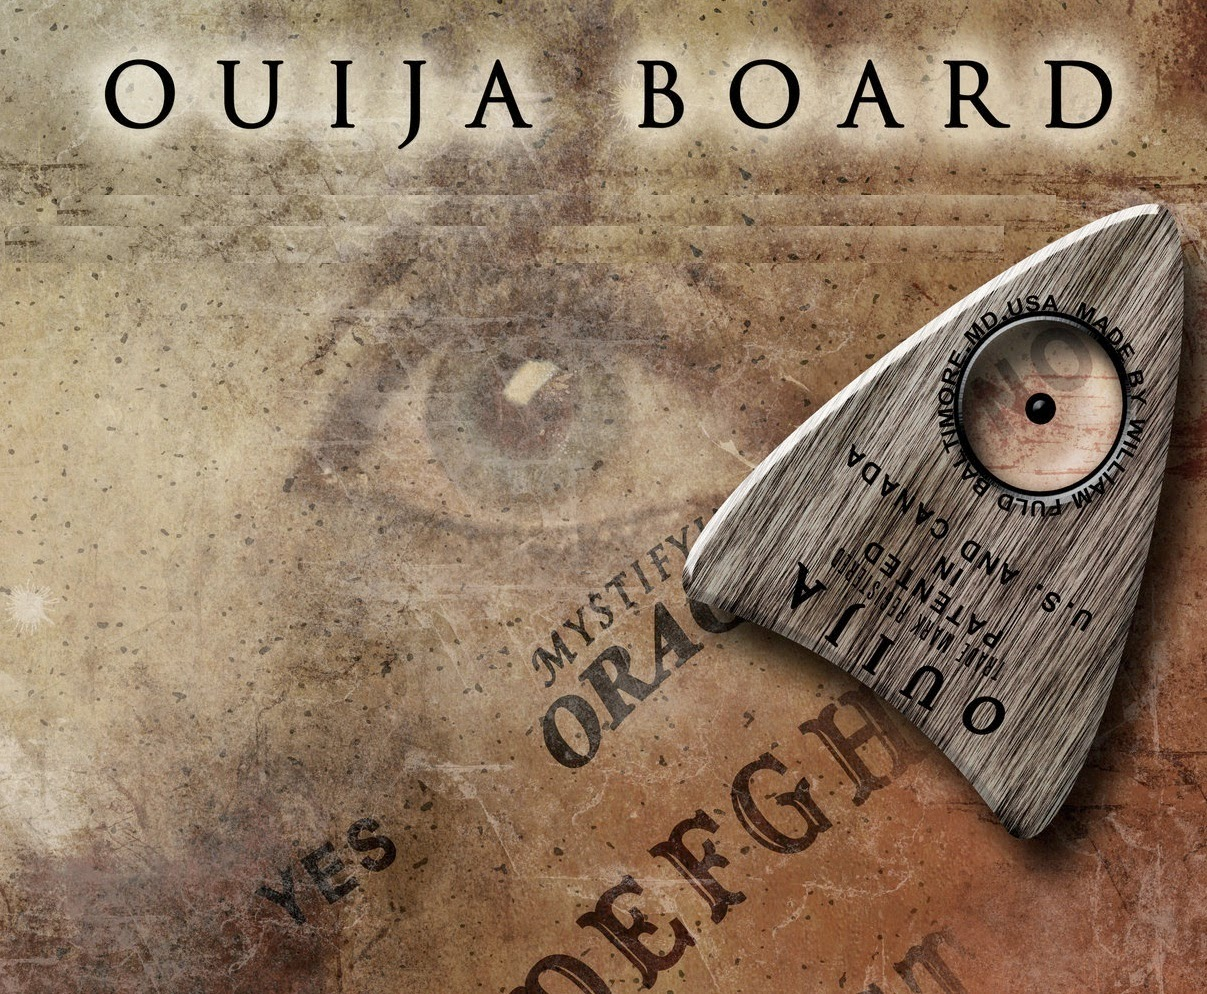 New study reveals the science behind Ouija boards